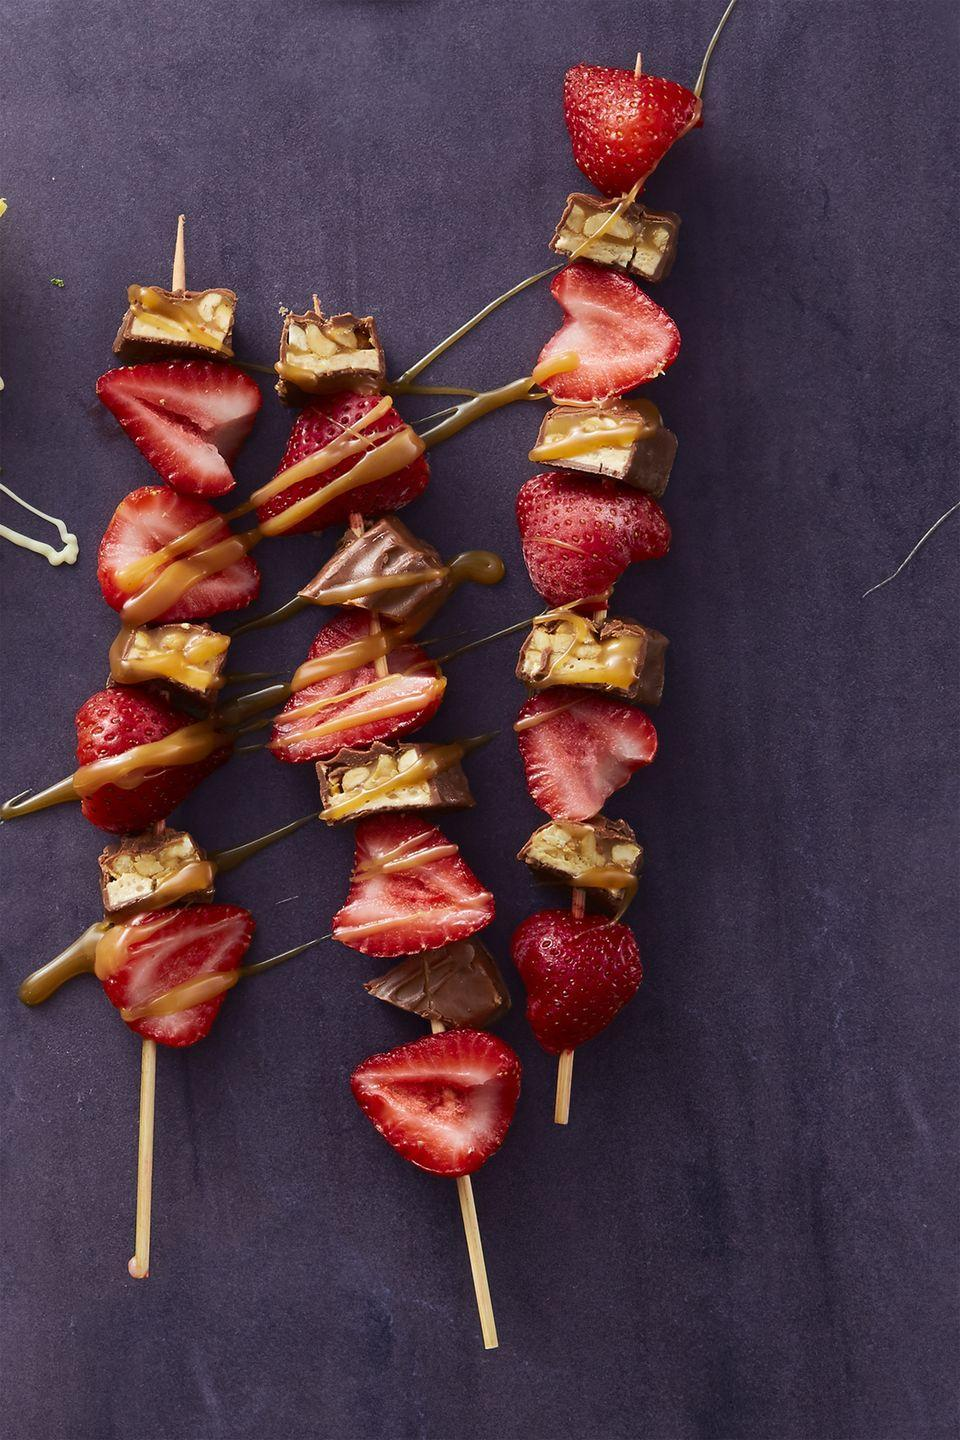 """<p>Not only do these dessert sticks bring together two crowd favorites—strawberries and Snickers—but they're also drizzled with dulce de leche.</p><p><em><a href=""""https://www.womansday.com/food-recipes/food-drinks/recipes/a59413/strawberry-snickers-sticks-recipe/"""" rel=""""nofollow noopener"""" target=""""_blank"""" data-ylk=""""slk:Get the recipe for Strawberry and Snickers Sticks."""" class=""""link rapid-noclick-resp"""">Get the recipe for Strawberry and Snickers Sticks.</a></em></p>"""